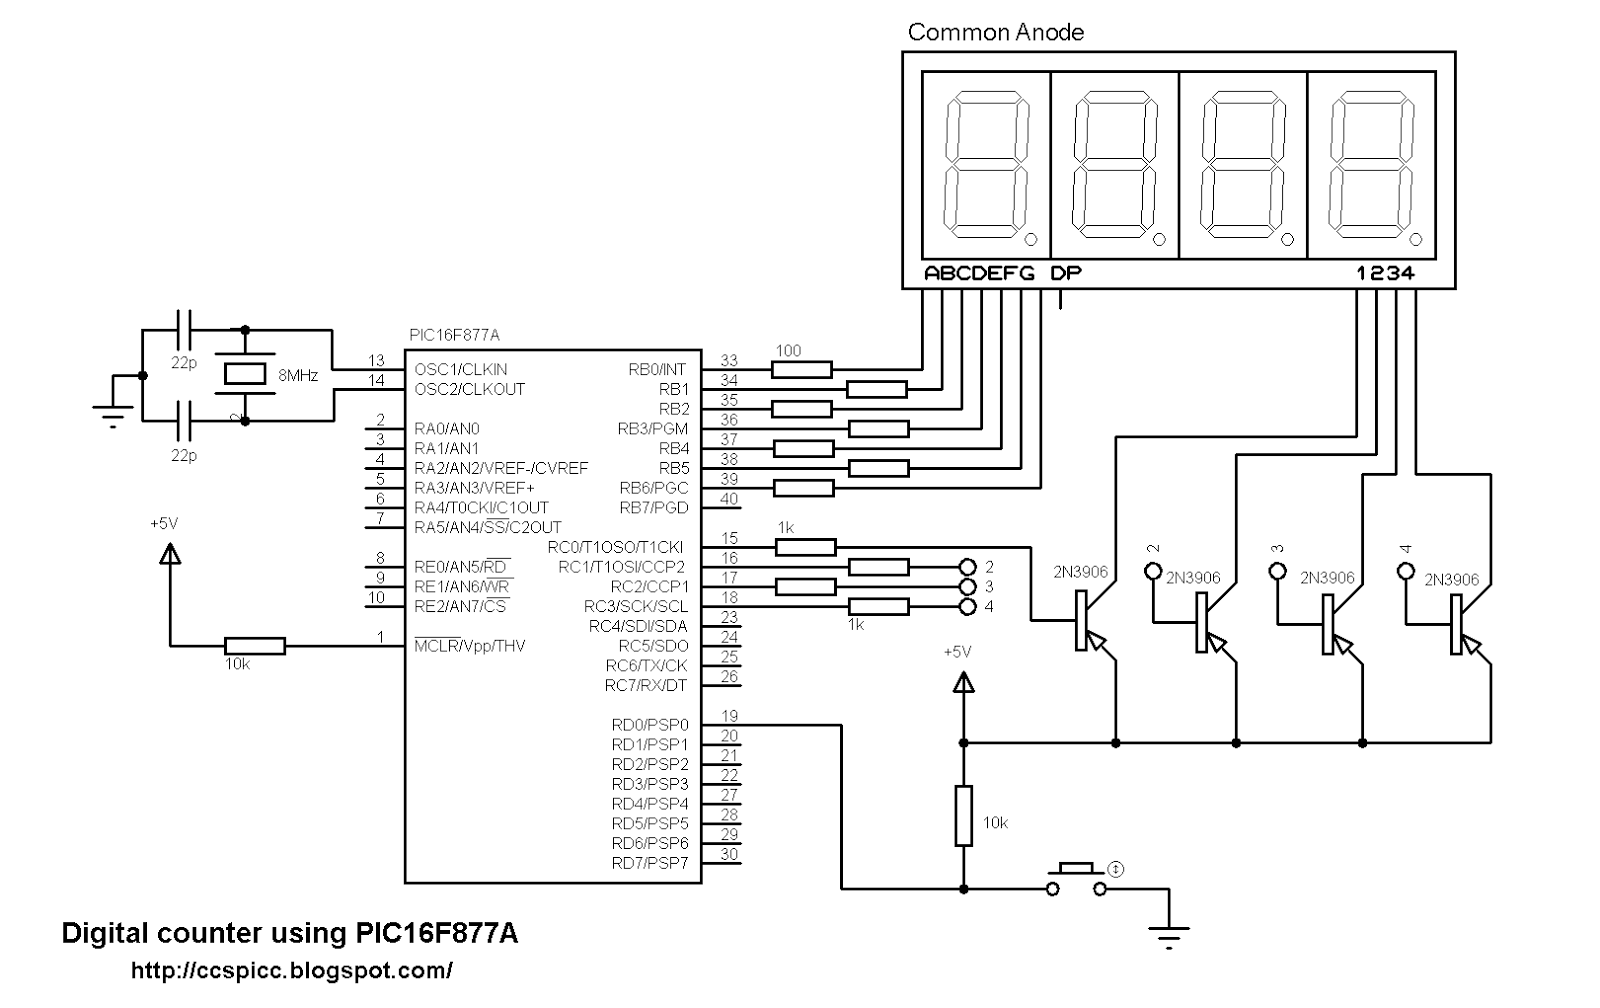 4 Digit Digital Counter Using Pic16f877a And Ccs C Compiler